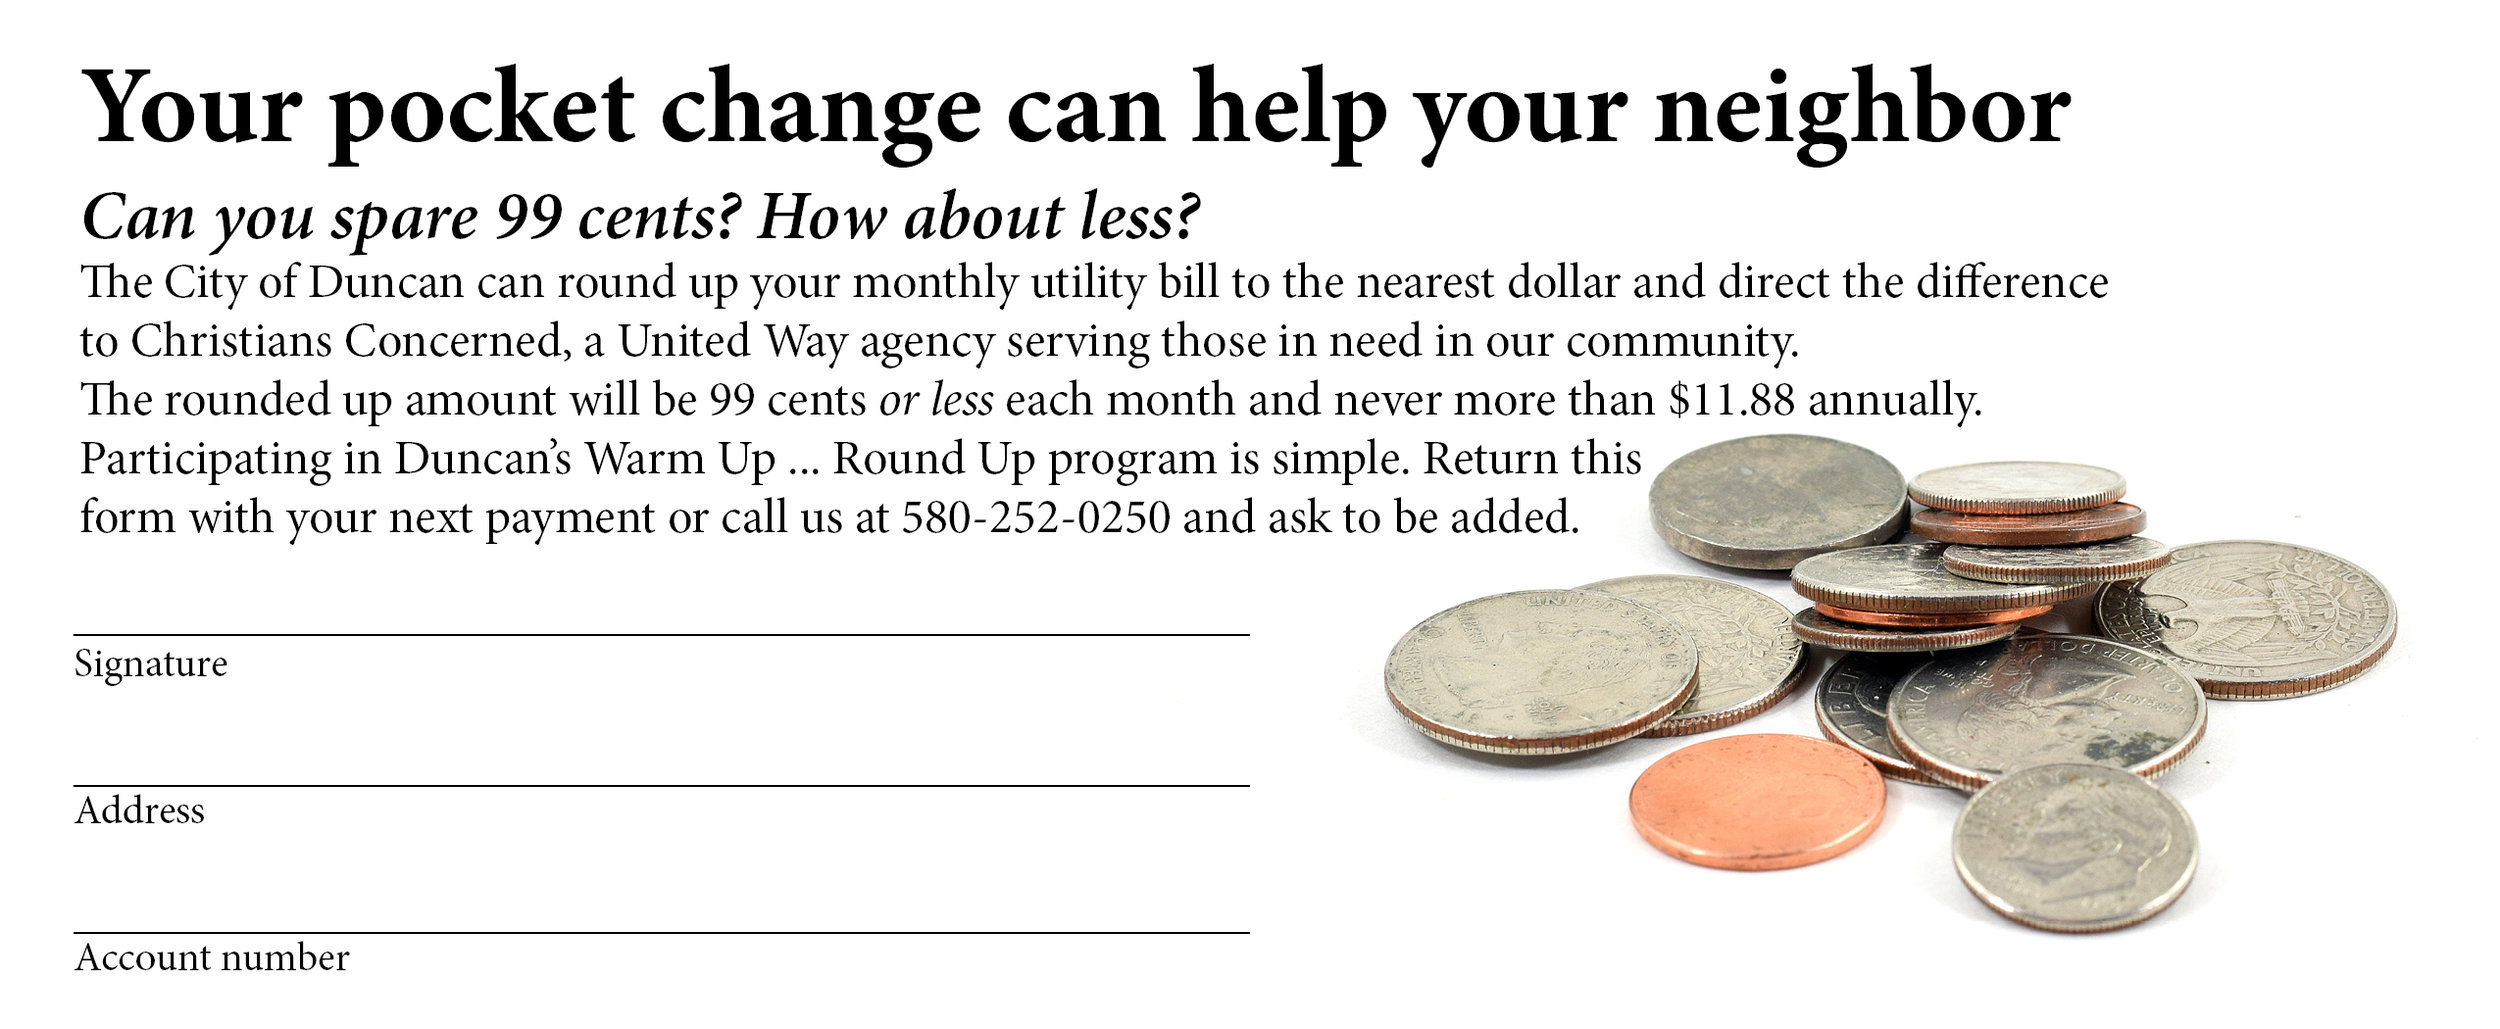 Look for this flyer in your City of Duncan utility bill or call 580-252-0250 to sign up!